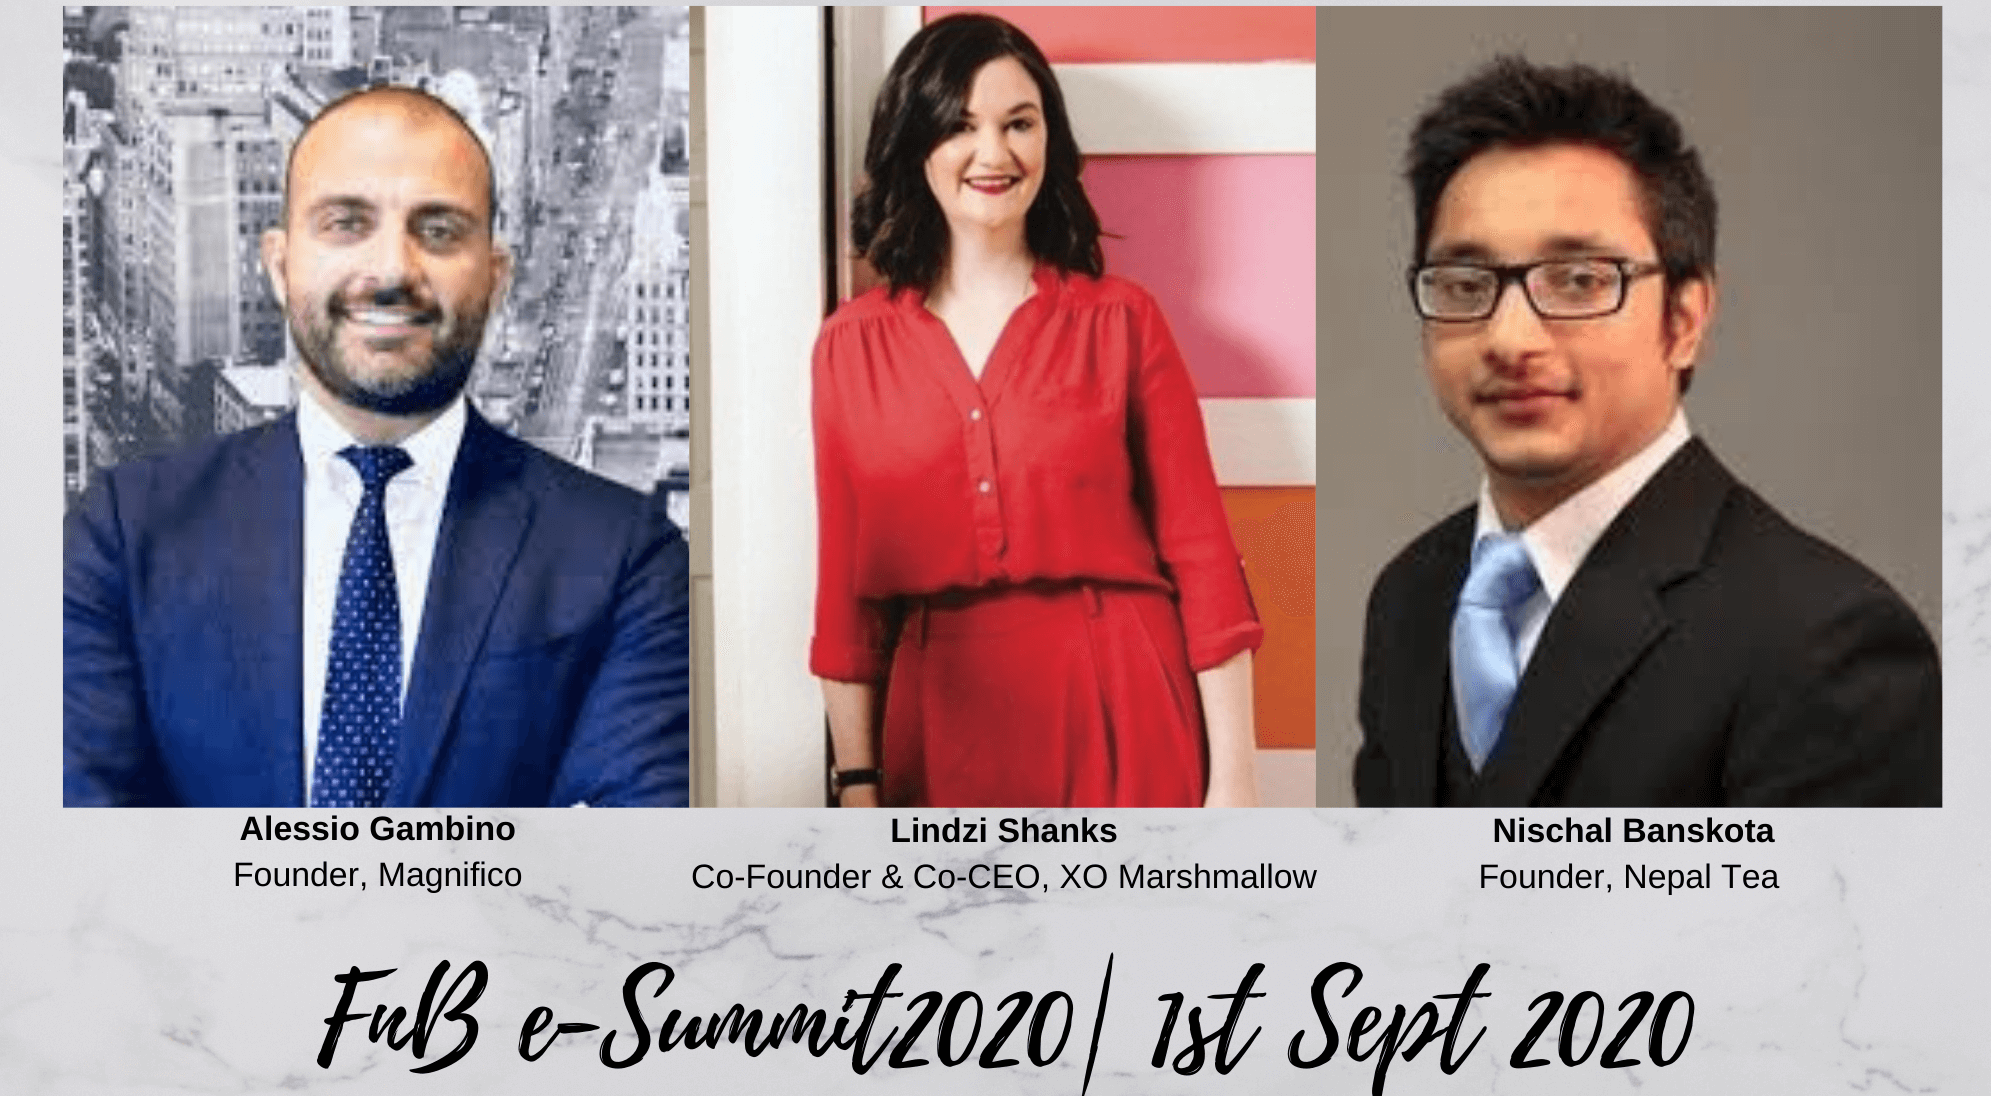 Day 7 – Session 1: F&B e-Summit 2020 (Sep 1st, 2020)